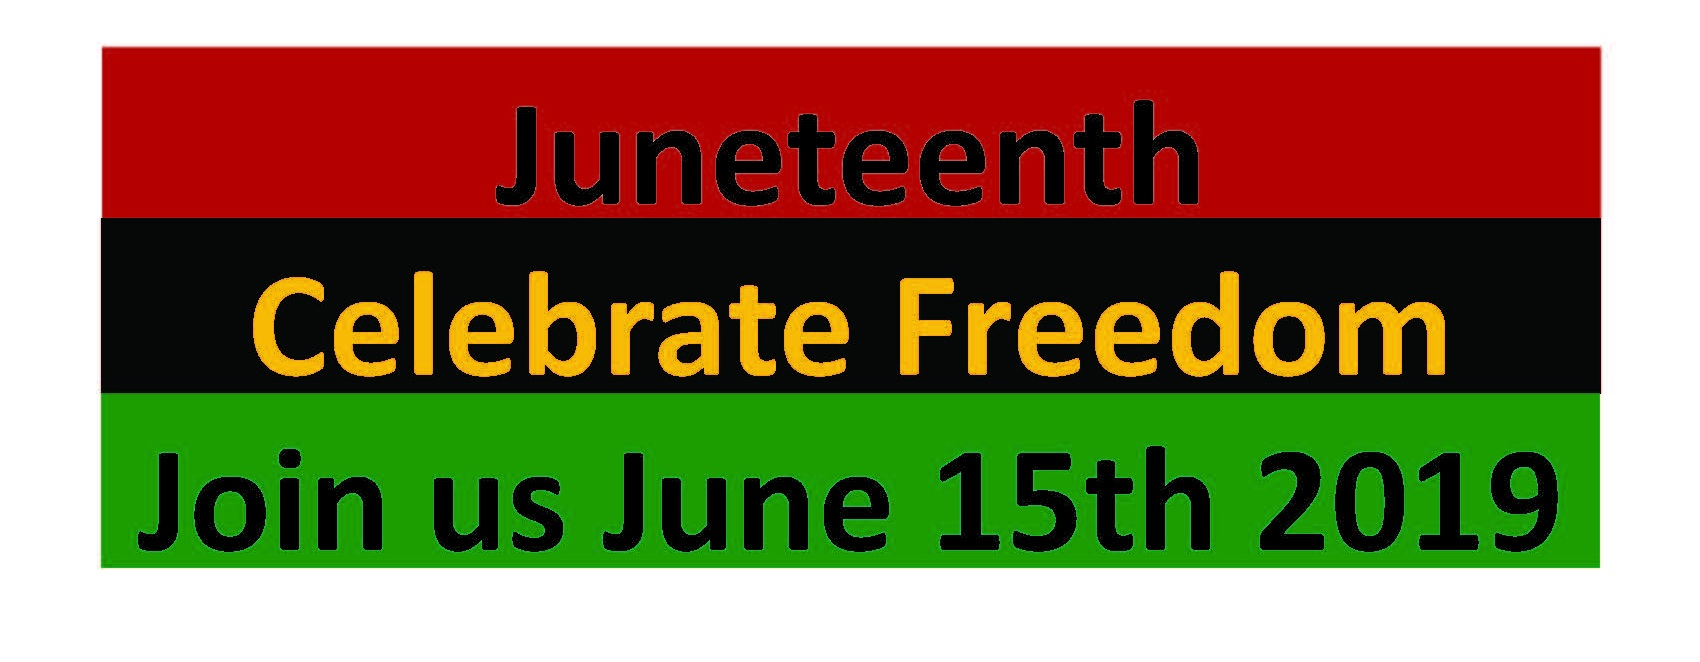 headline+juneteenth.jpg